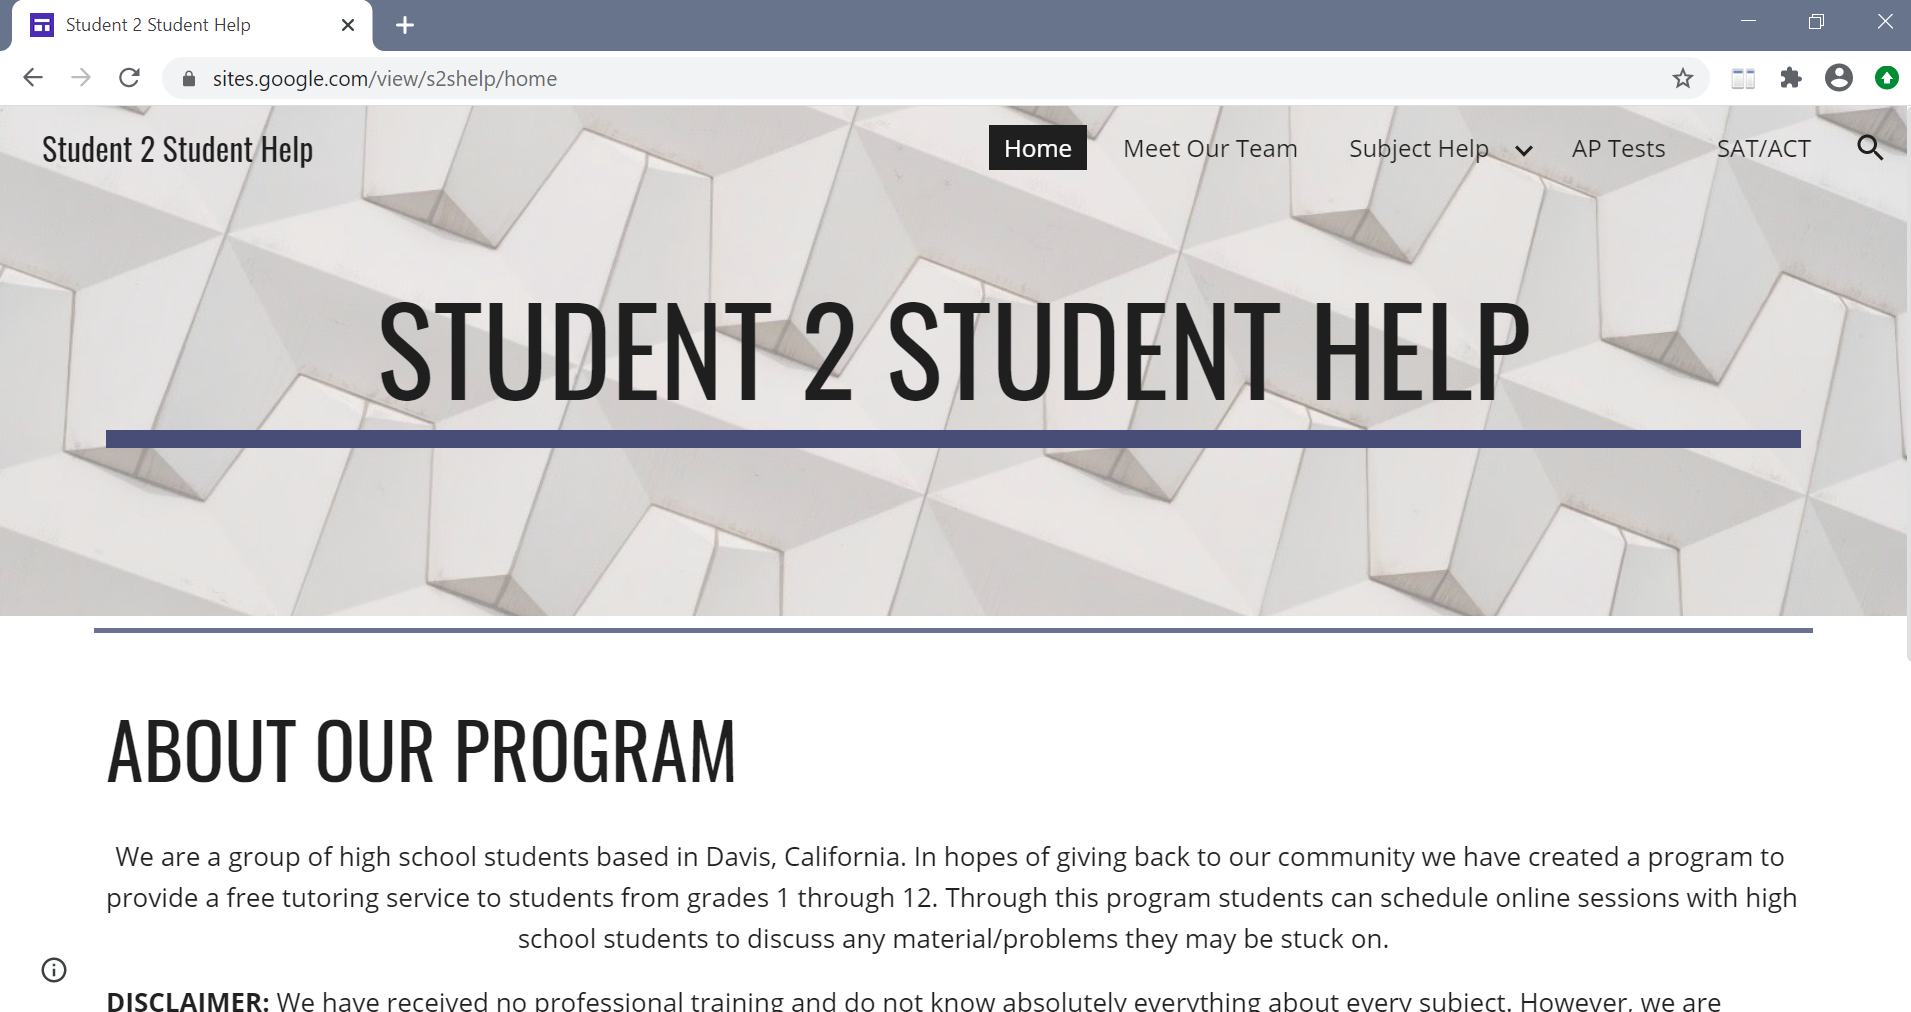 Student 2 Student Help website homepage